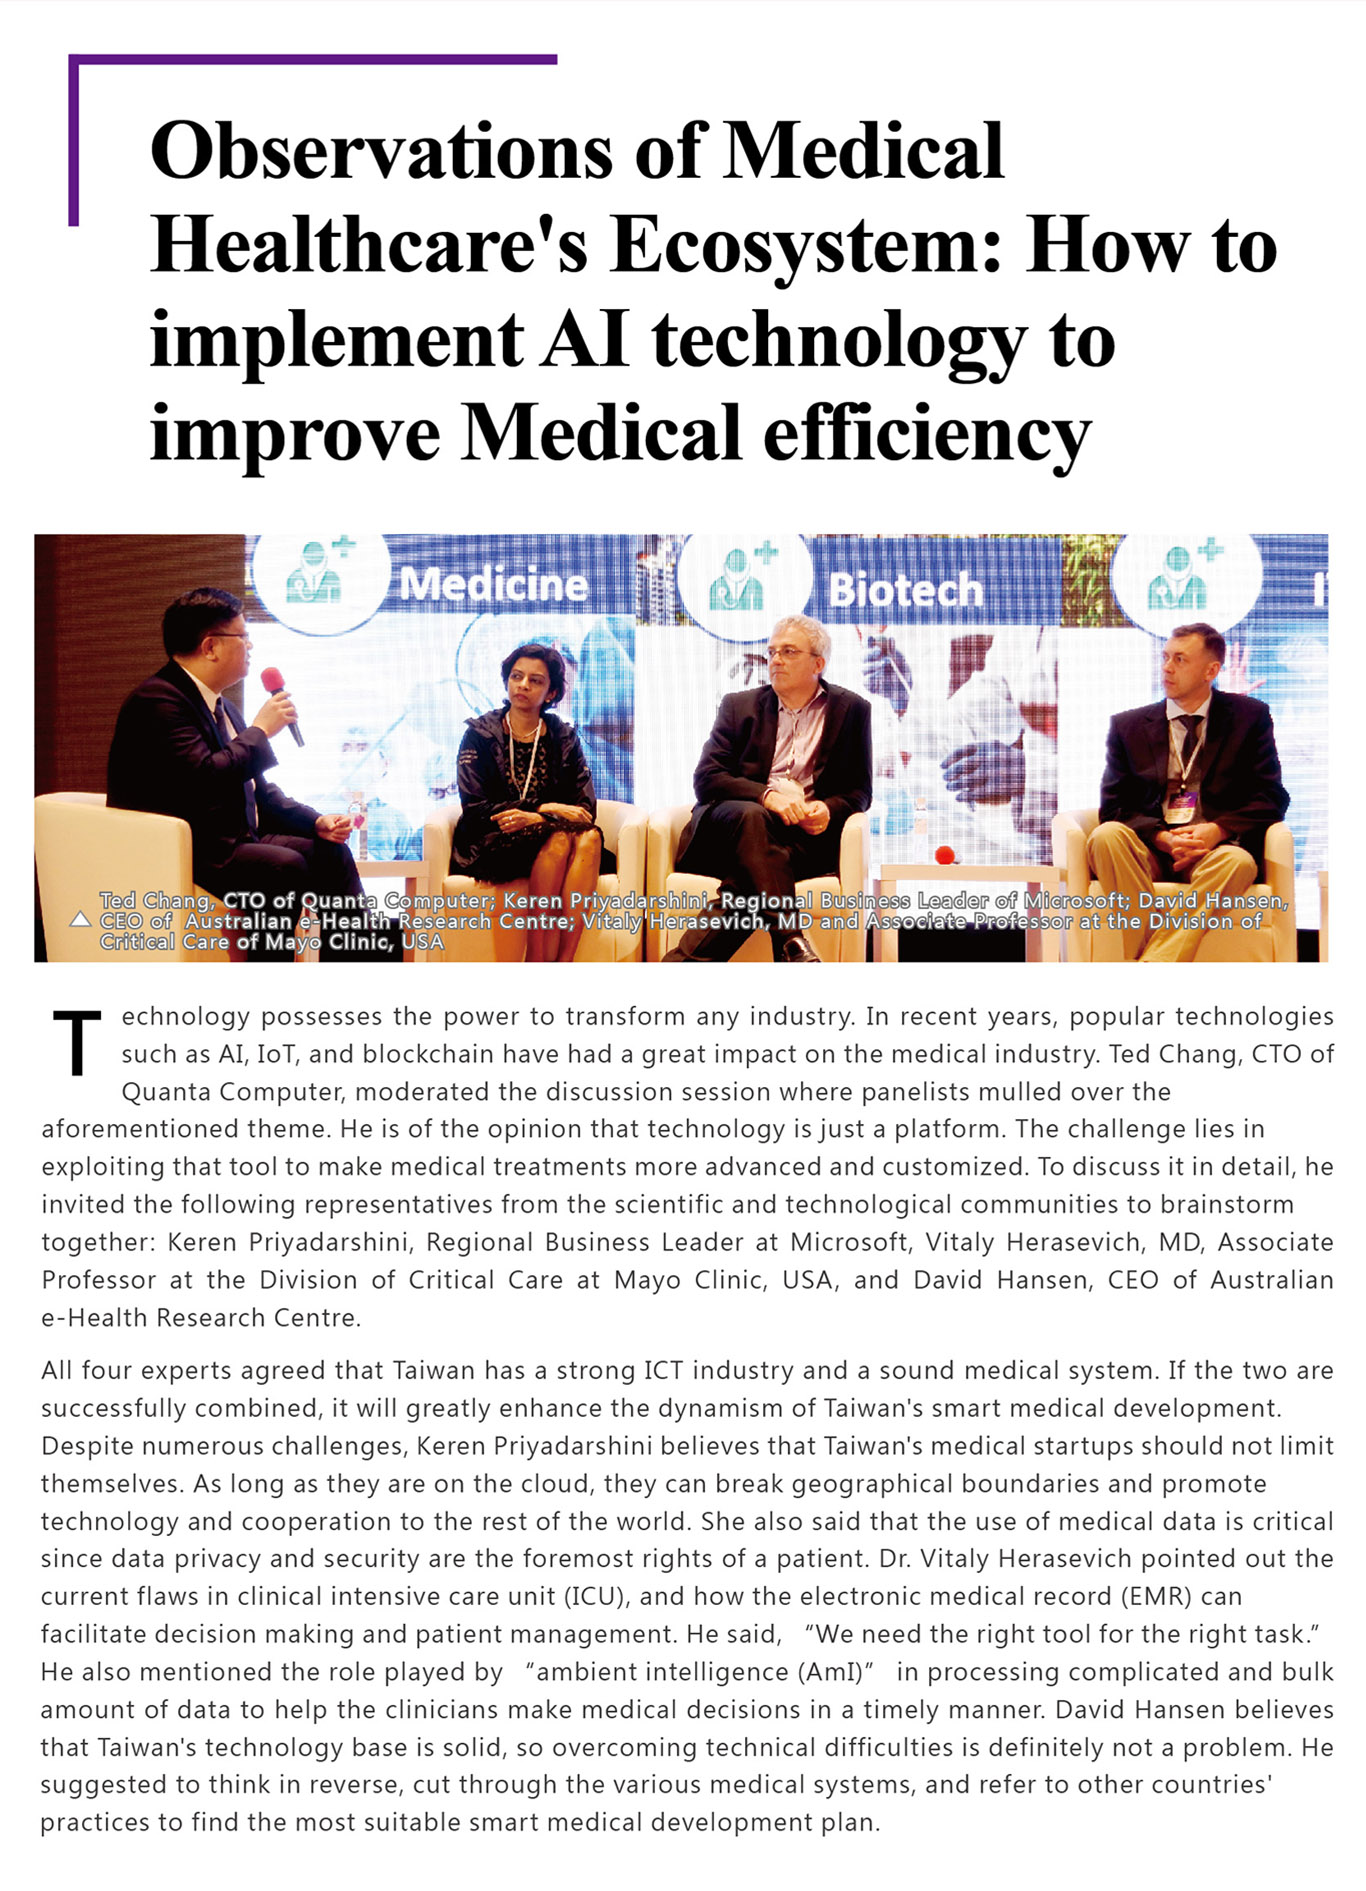 """Observations of Medical Healthcare's Ecosystem: How to implement AI technology to improve Medical efficiency Technology possesses the power to transform any industry. In recent years, popular technologies such as AI, IoT, and blockchain have had a great impact on the medical industry. Ted Chang, CTO of Quanta Computer, moderated the discussion session where panelists mulled over the aforementioned theme. He is of the opinion that technology is just a platform. The challenge lies in exploiting that tool to make medical treatments more advanced and customized. To discuss it in detail, he invited the following representatives from the scientific and technological communities to brainstorm together: Keren Priyadarshini, Regional Business Leader at Microsoft, Vitaly Herasevich, MD, Associate Professor at the Division of Critical Care at Mayo Clinic, USA, and David Hansen, CEO of Australian e-Health Research Centre.All four experts agreed that Taiwan has a strong ICT industry and a sound medical system. If the two are successfully combined, it will greatly enhance the dynamism of Taiwan's smart medical development. Despite numerous challenges, Keren Priyadarshini believes that Taiwan's medical startups should not limit themselves. As long as they are on the cloud, they can break geographical boundaries and promote technology and cooperation to the rest of the world. She also said that the use of medical data is critical since data privacy and security are the foremost rights of a patient. Dr. Vitaly Herasevich pointed out the current flaws in clinical intensive care unit (ICU), and how the electronic medical record (EMR) can facilitate decision making and patient management. He said, """"We need the right tool for the right task."""" He also mentioned the role played by """"ambient intelligence (AmI)"""" in processing complicated and bulk amount of data to help the clinicians make medical decisions in a timely manner. David Hansen believes that Taiwan's technology base is solid, so o"""